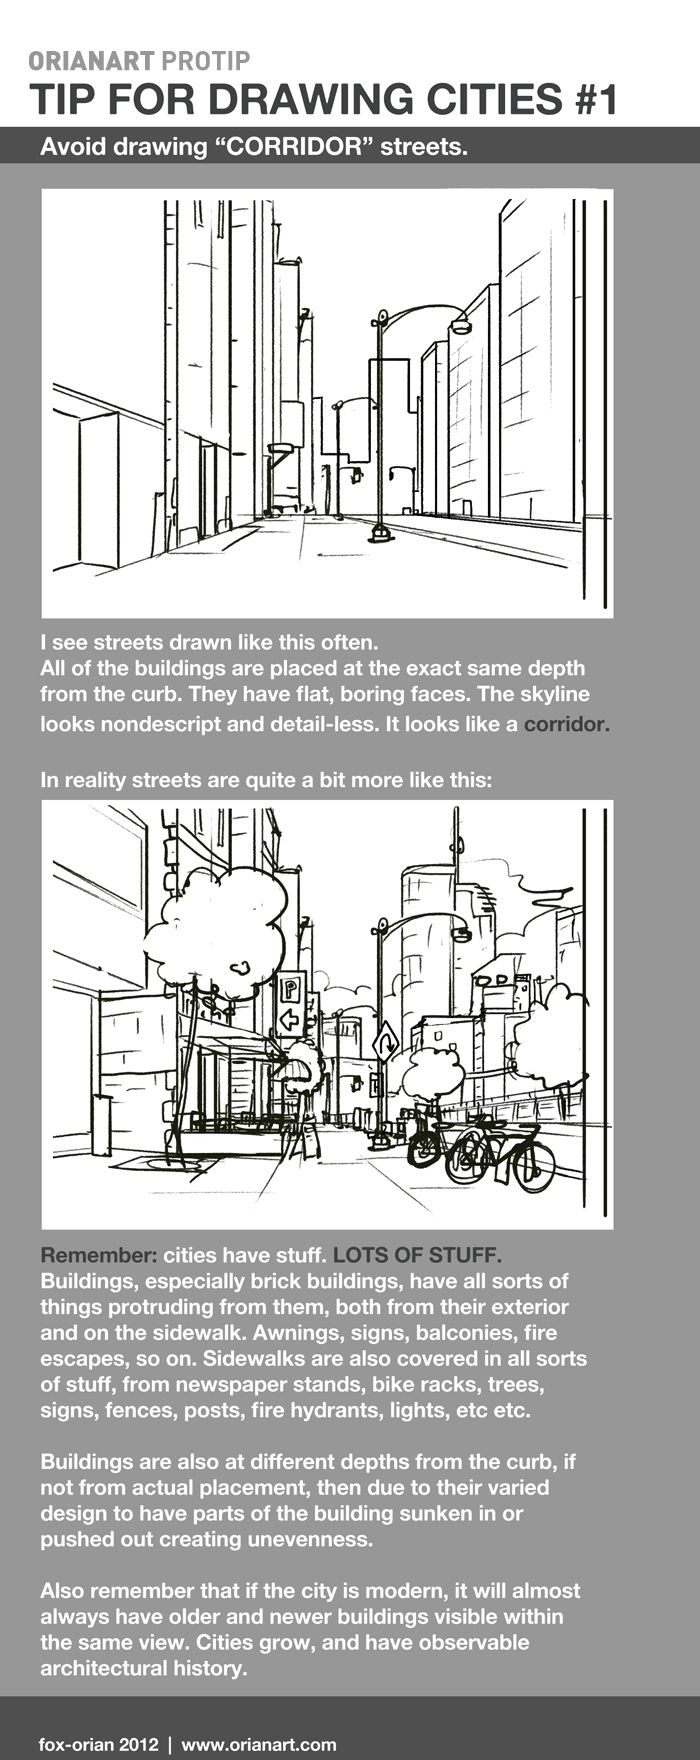 Drawing Cities 1 - Corridor Streets by `fox-orian on deviantART  --- reminds me…